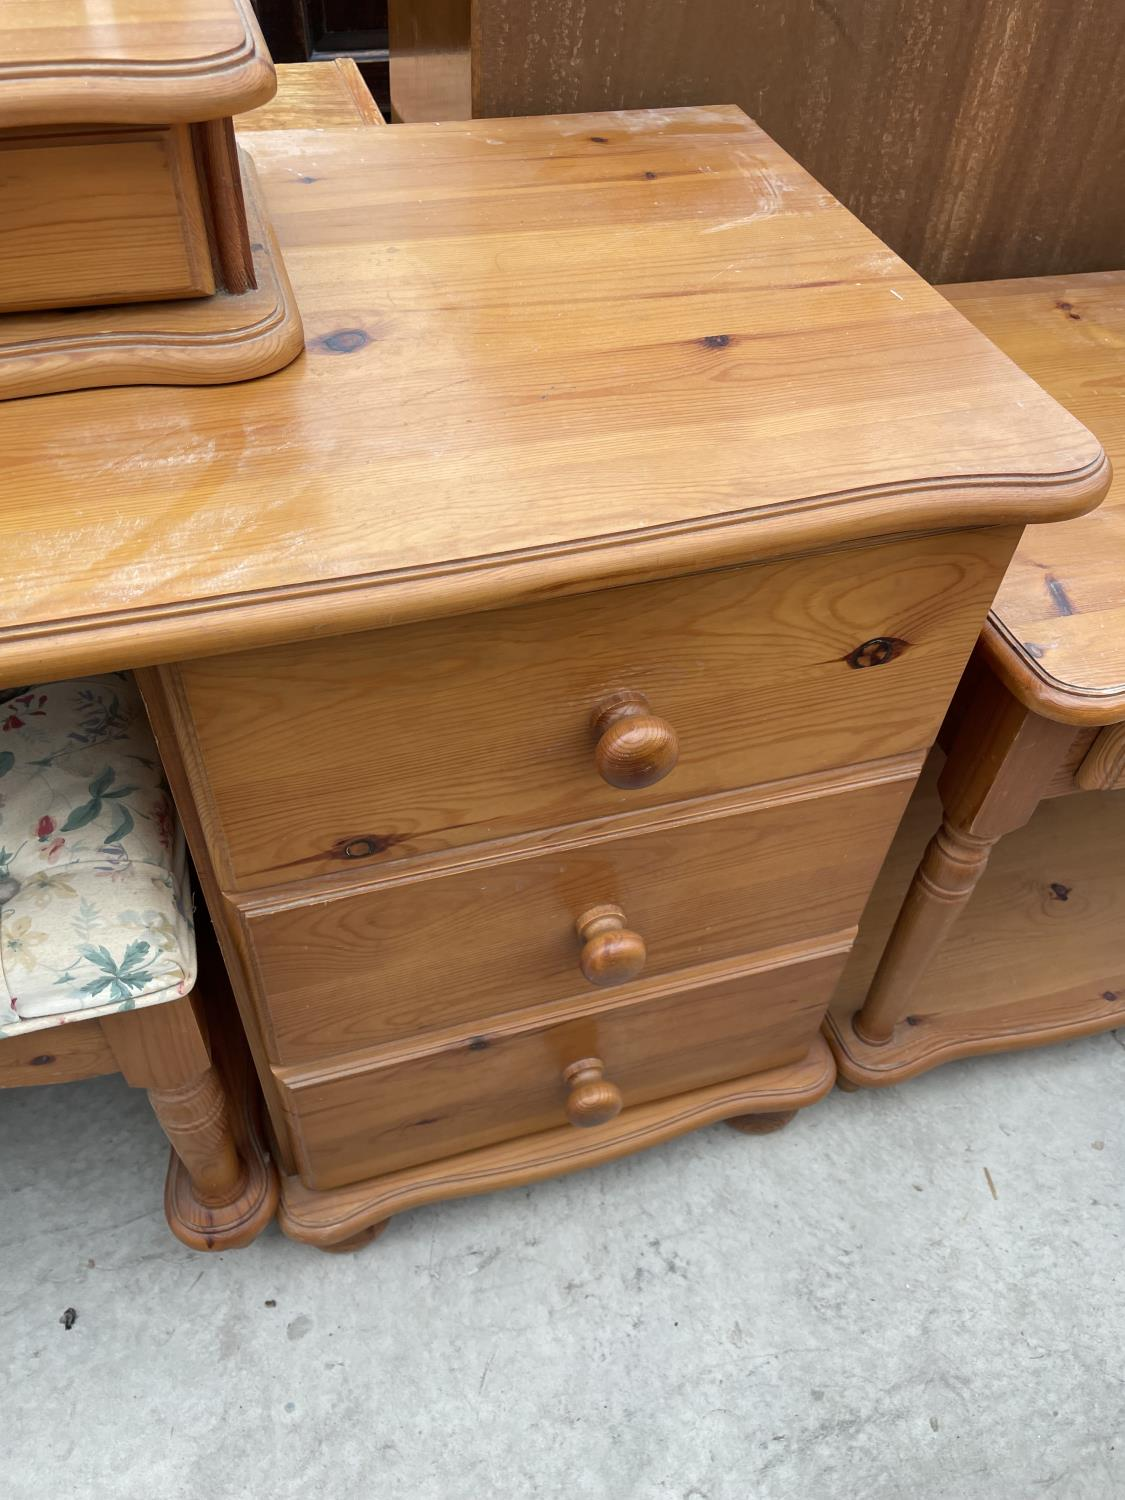 A MODERN PINE DRESSING TABLE WITH MIRROR, STOOL AND TWO BEDSIDE TABLES - Image 6 of 7